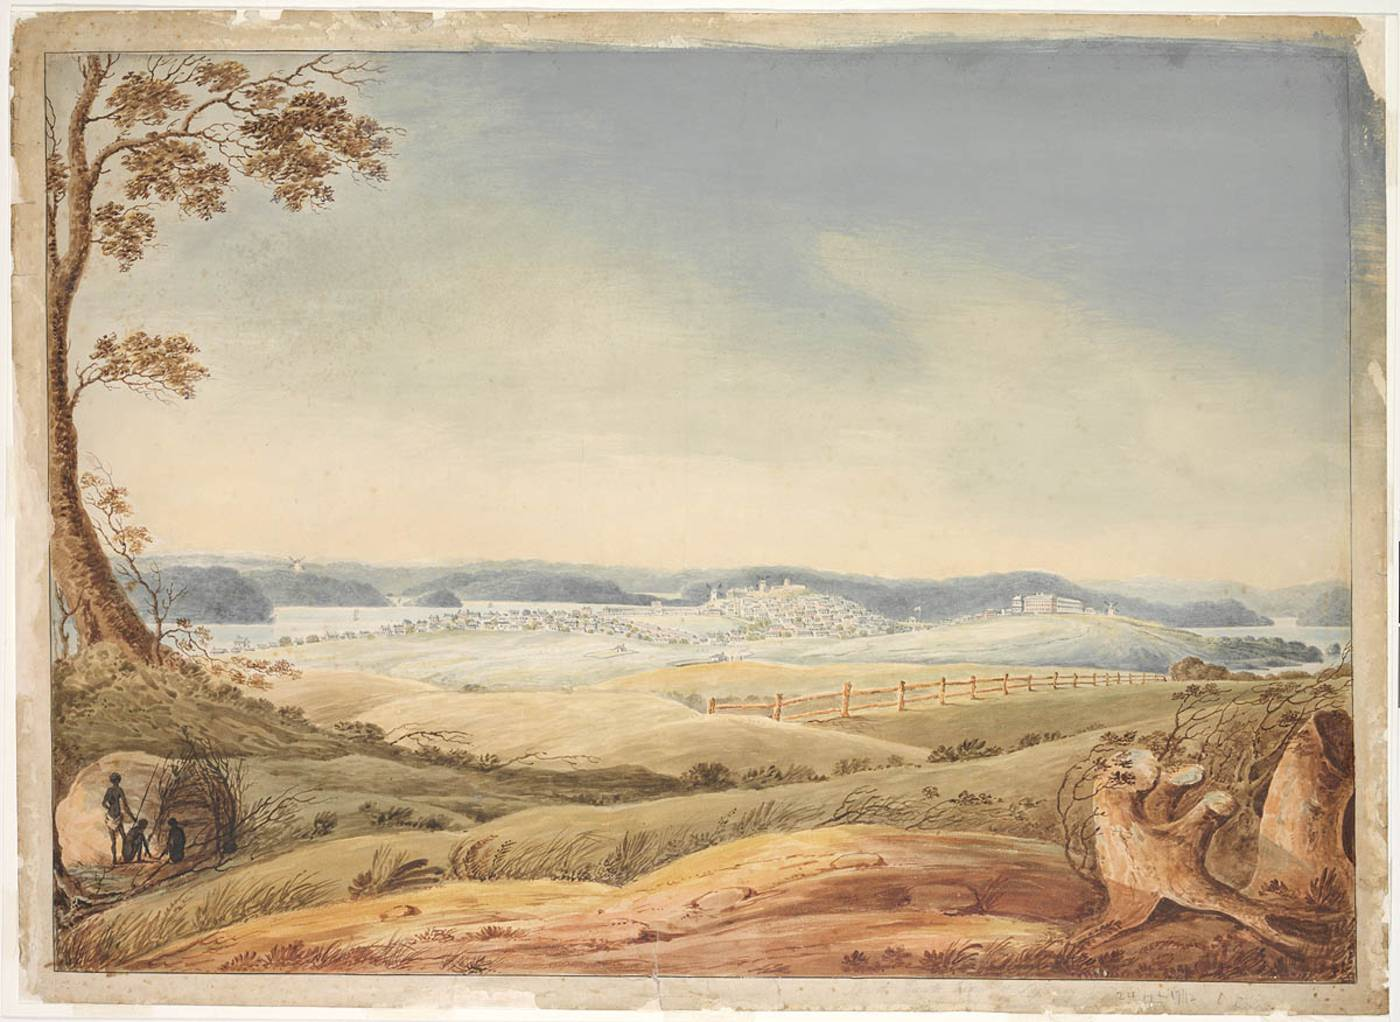 Watercolour painting of a landscape with a tree stump in the right bottom corner